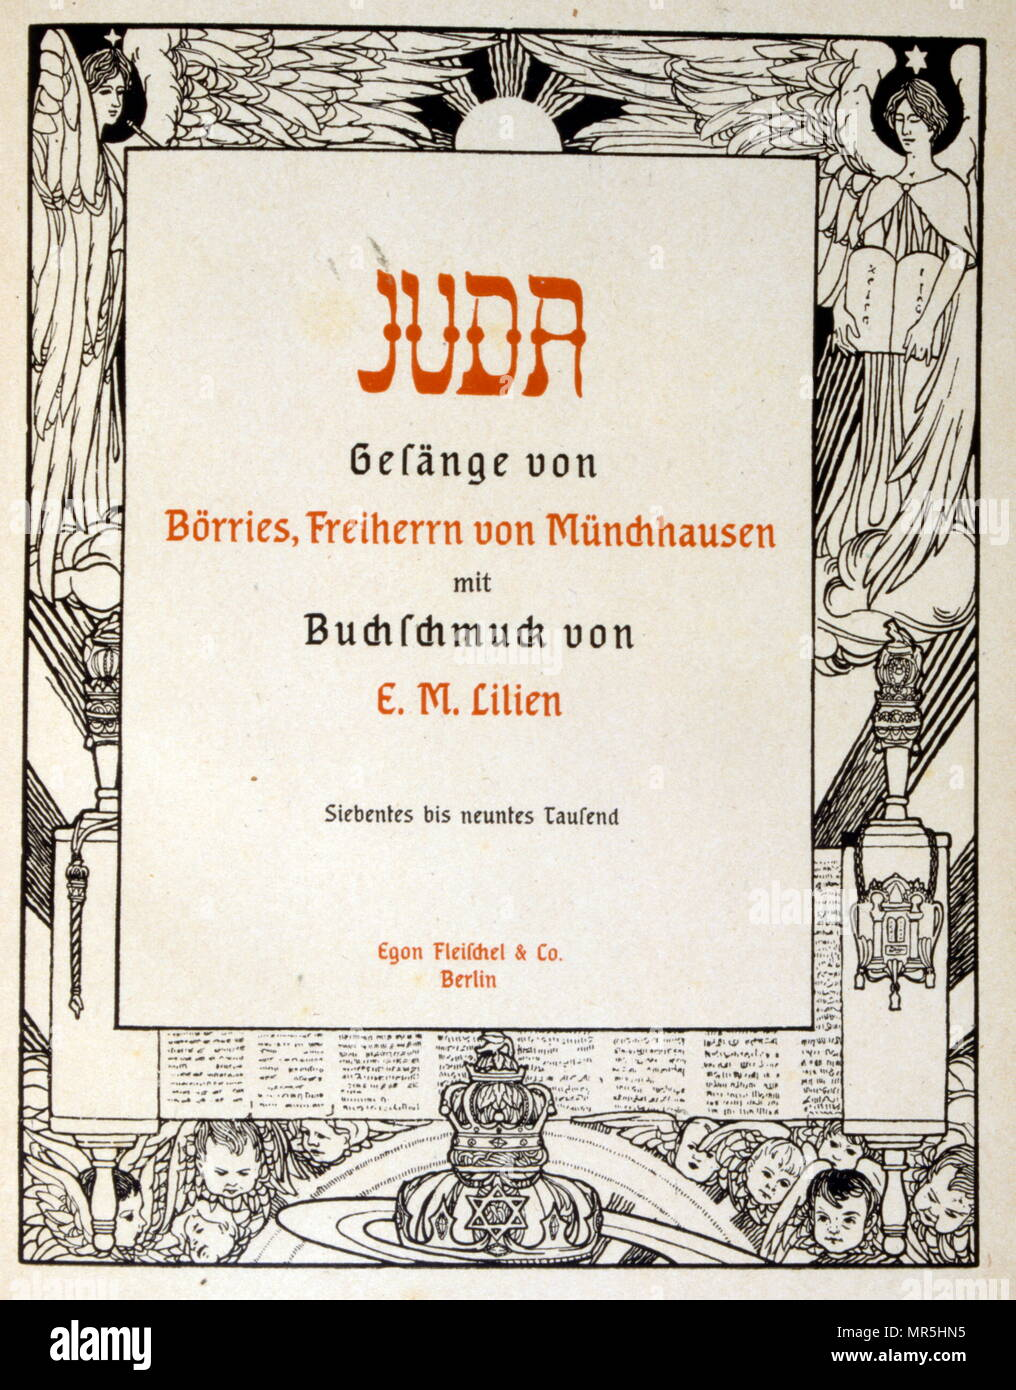 """Judah', a collection of ballads by the non-Jewish poet Börries von Münchhausen 1874 - 1945. Illustrated by Ephraim Moses Lilien (1874–1925), art nouveau illustrator and printmaker, noted for his art on Jewish themes. He is sometimes called the """"first Zionist artist. Münchhausen's relationship to Judaism remained ambivalent: Munchhausen did not consider the """"Jewish race"""" inferior, but merely wanted to prevent a """"mixture"""" with the non-Jewish Germans. Stock Photo"""